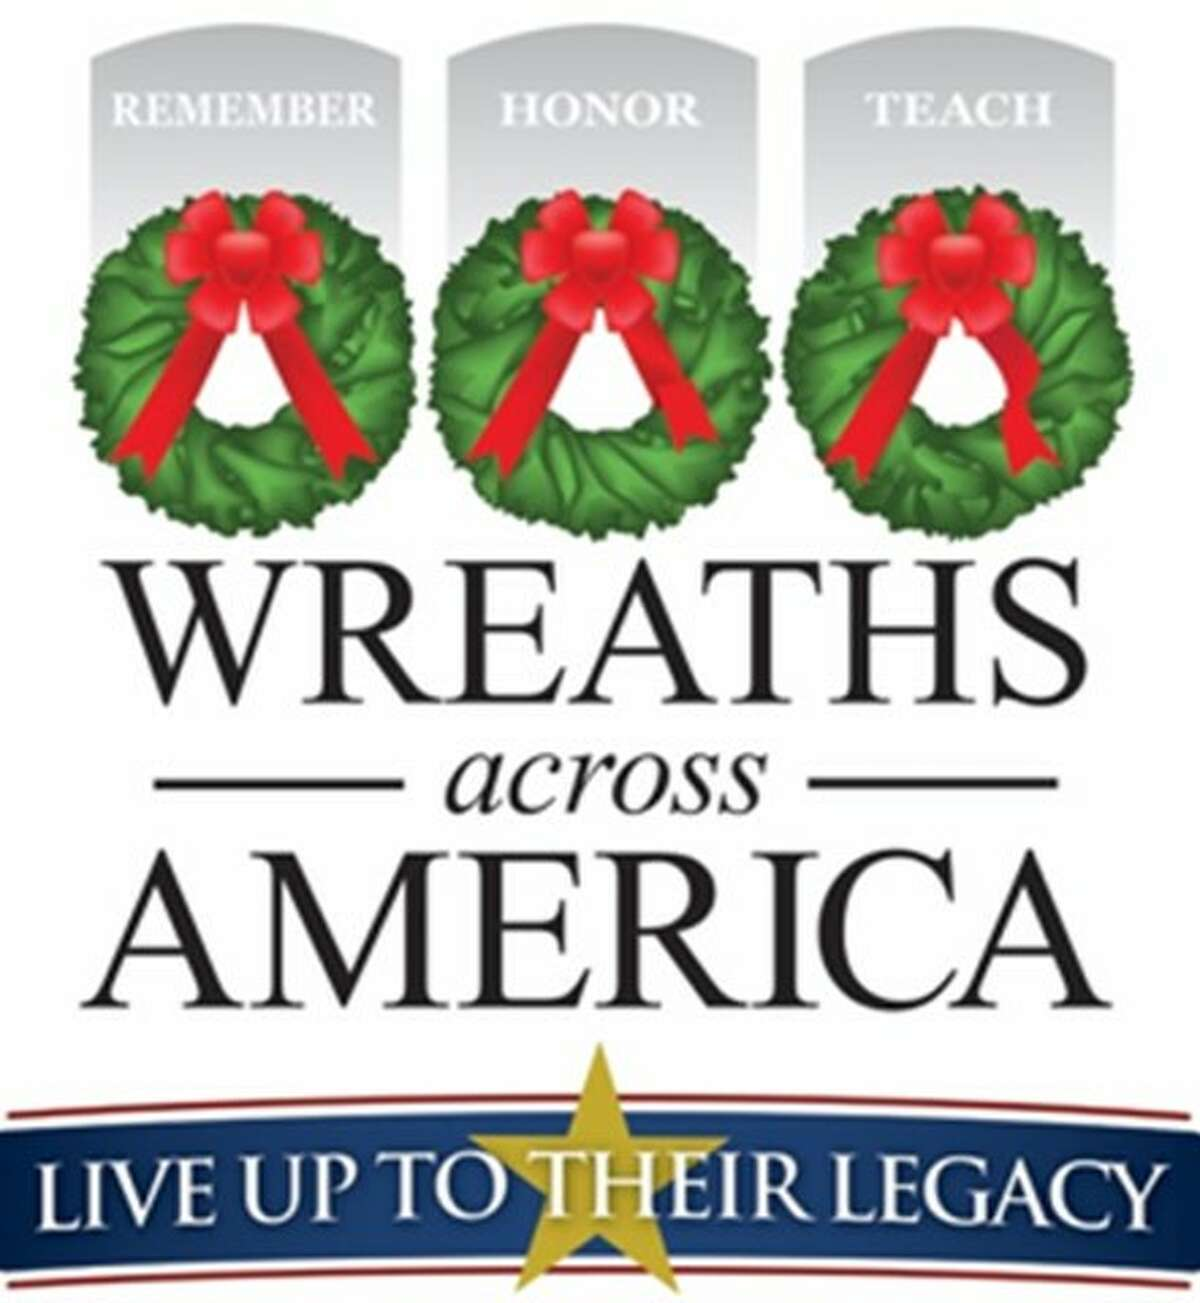 Wreaths Across America is the nonprofit organization best known for placing veterans' wreaths on the headstones of our nation's fallen at Arlington National Cemetery.